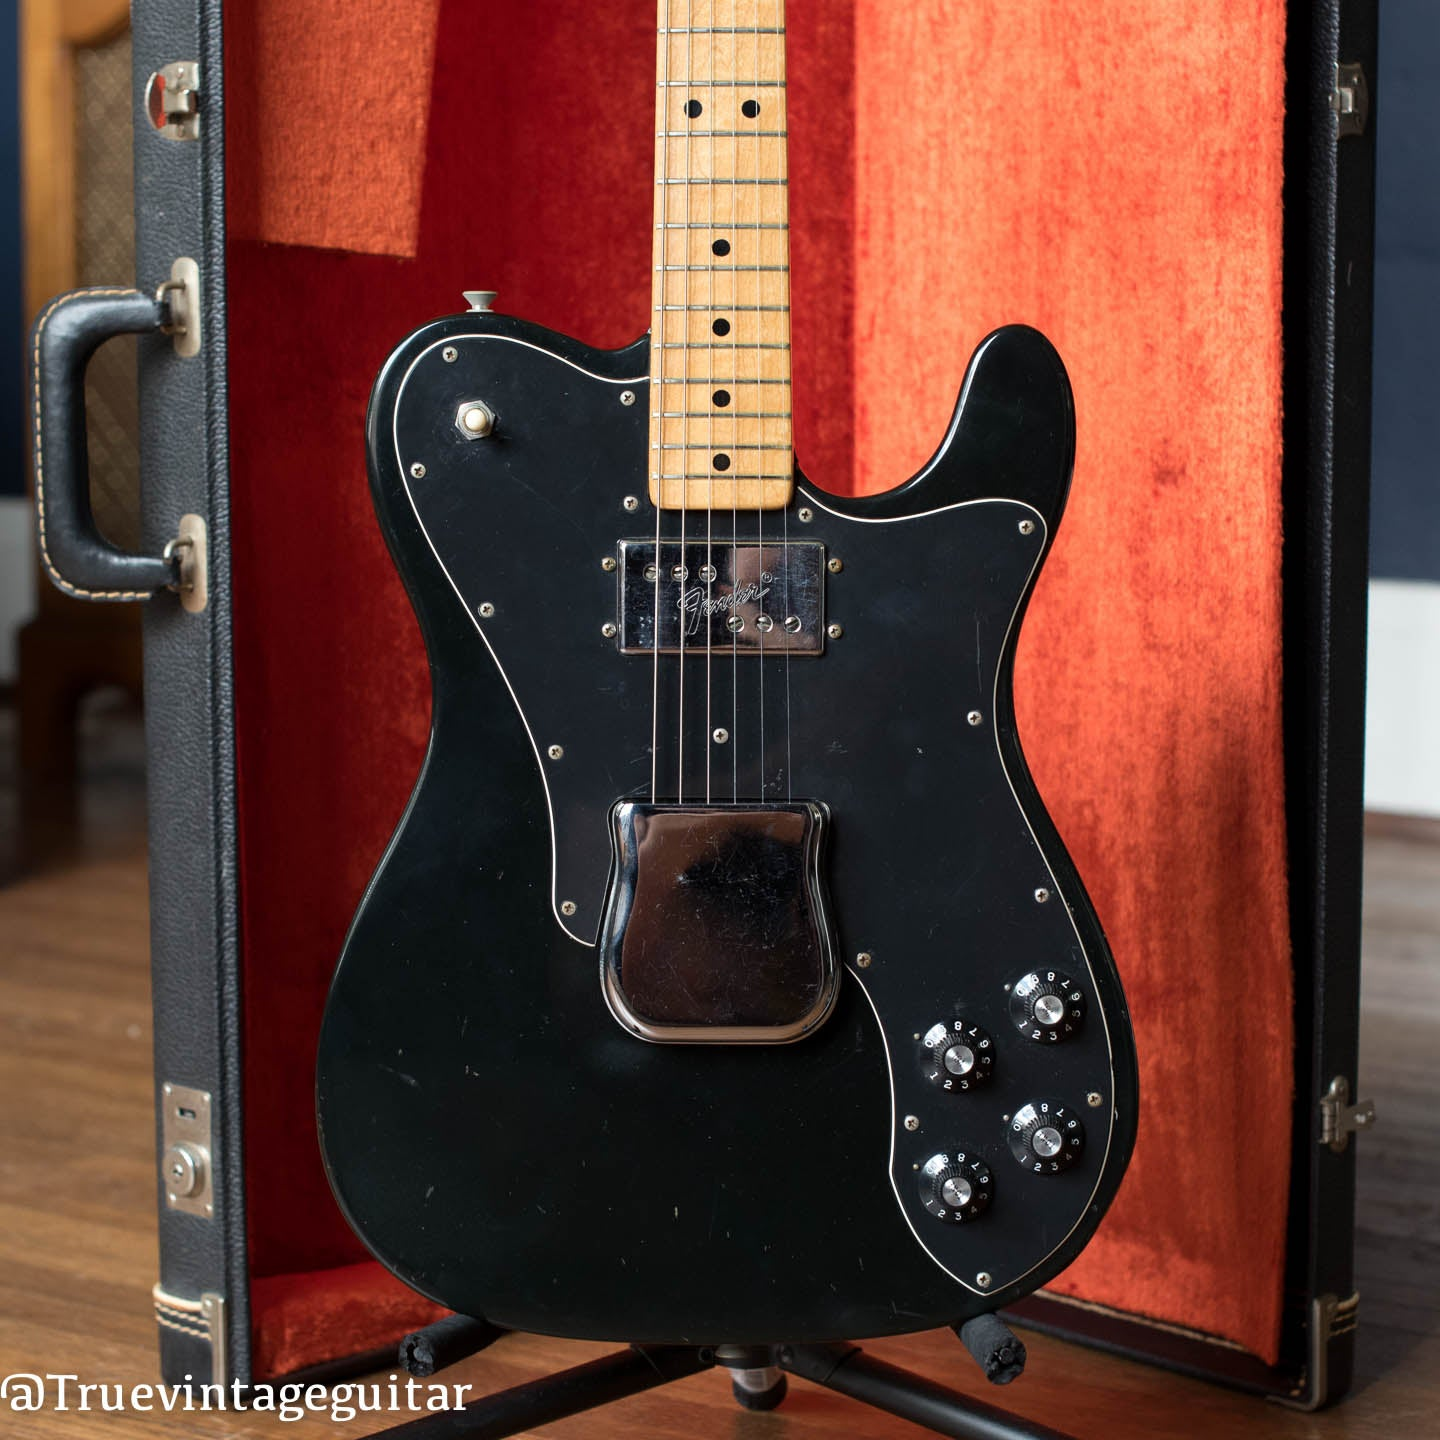 Black Fender Telecaster Custom electric guitar, vintage 1974